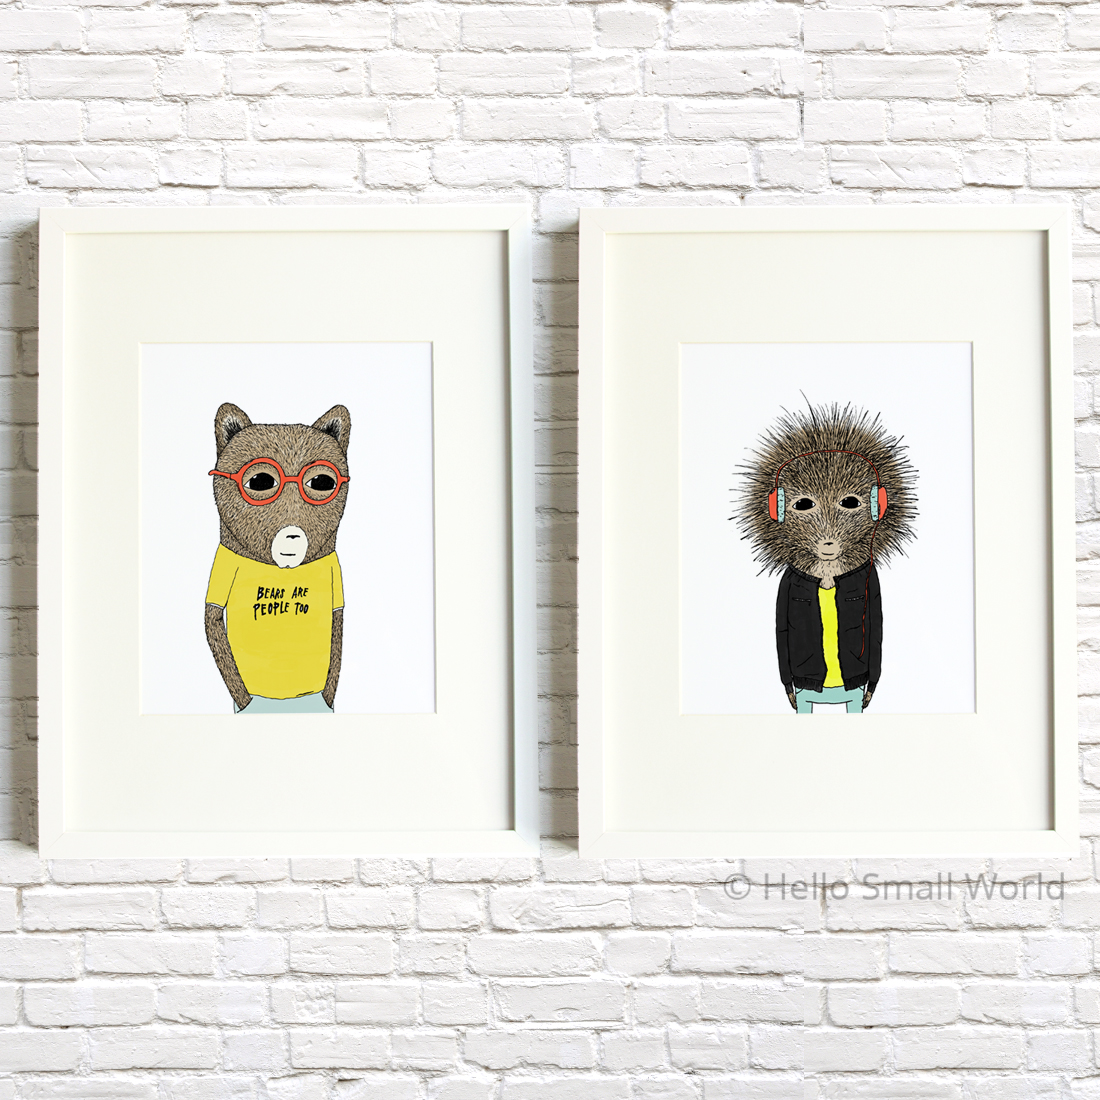 quirky animal framed prints on brick wall